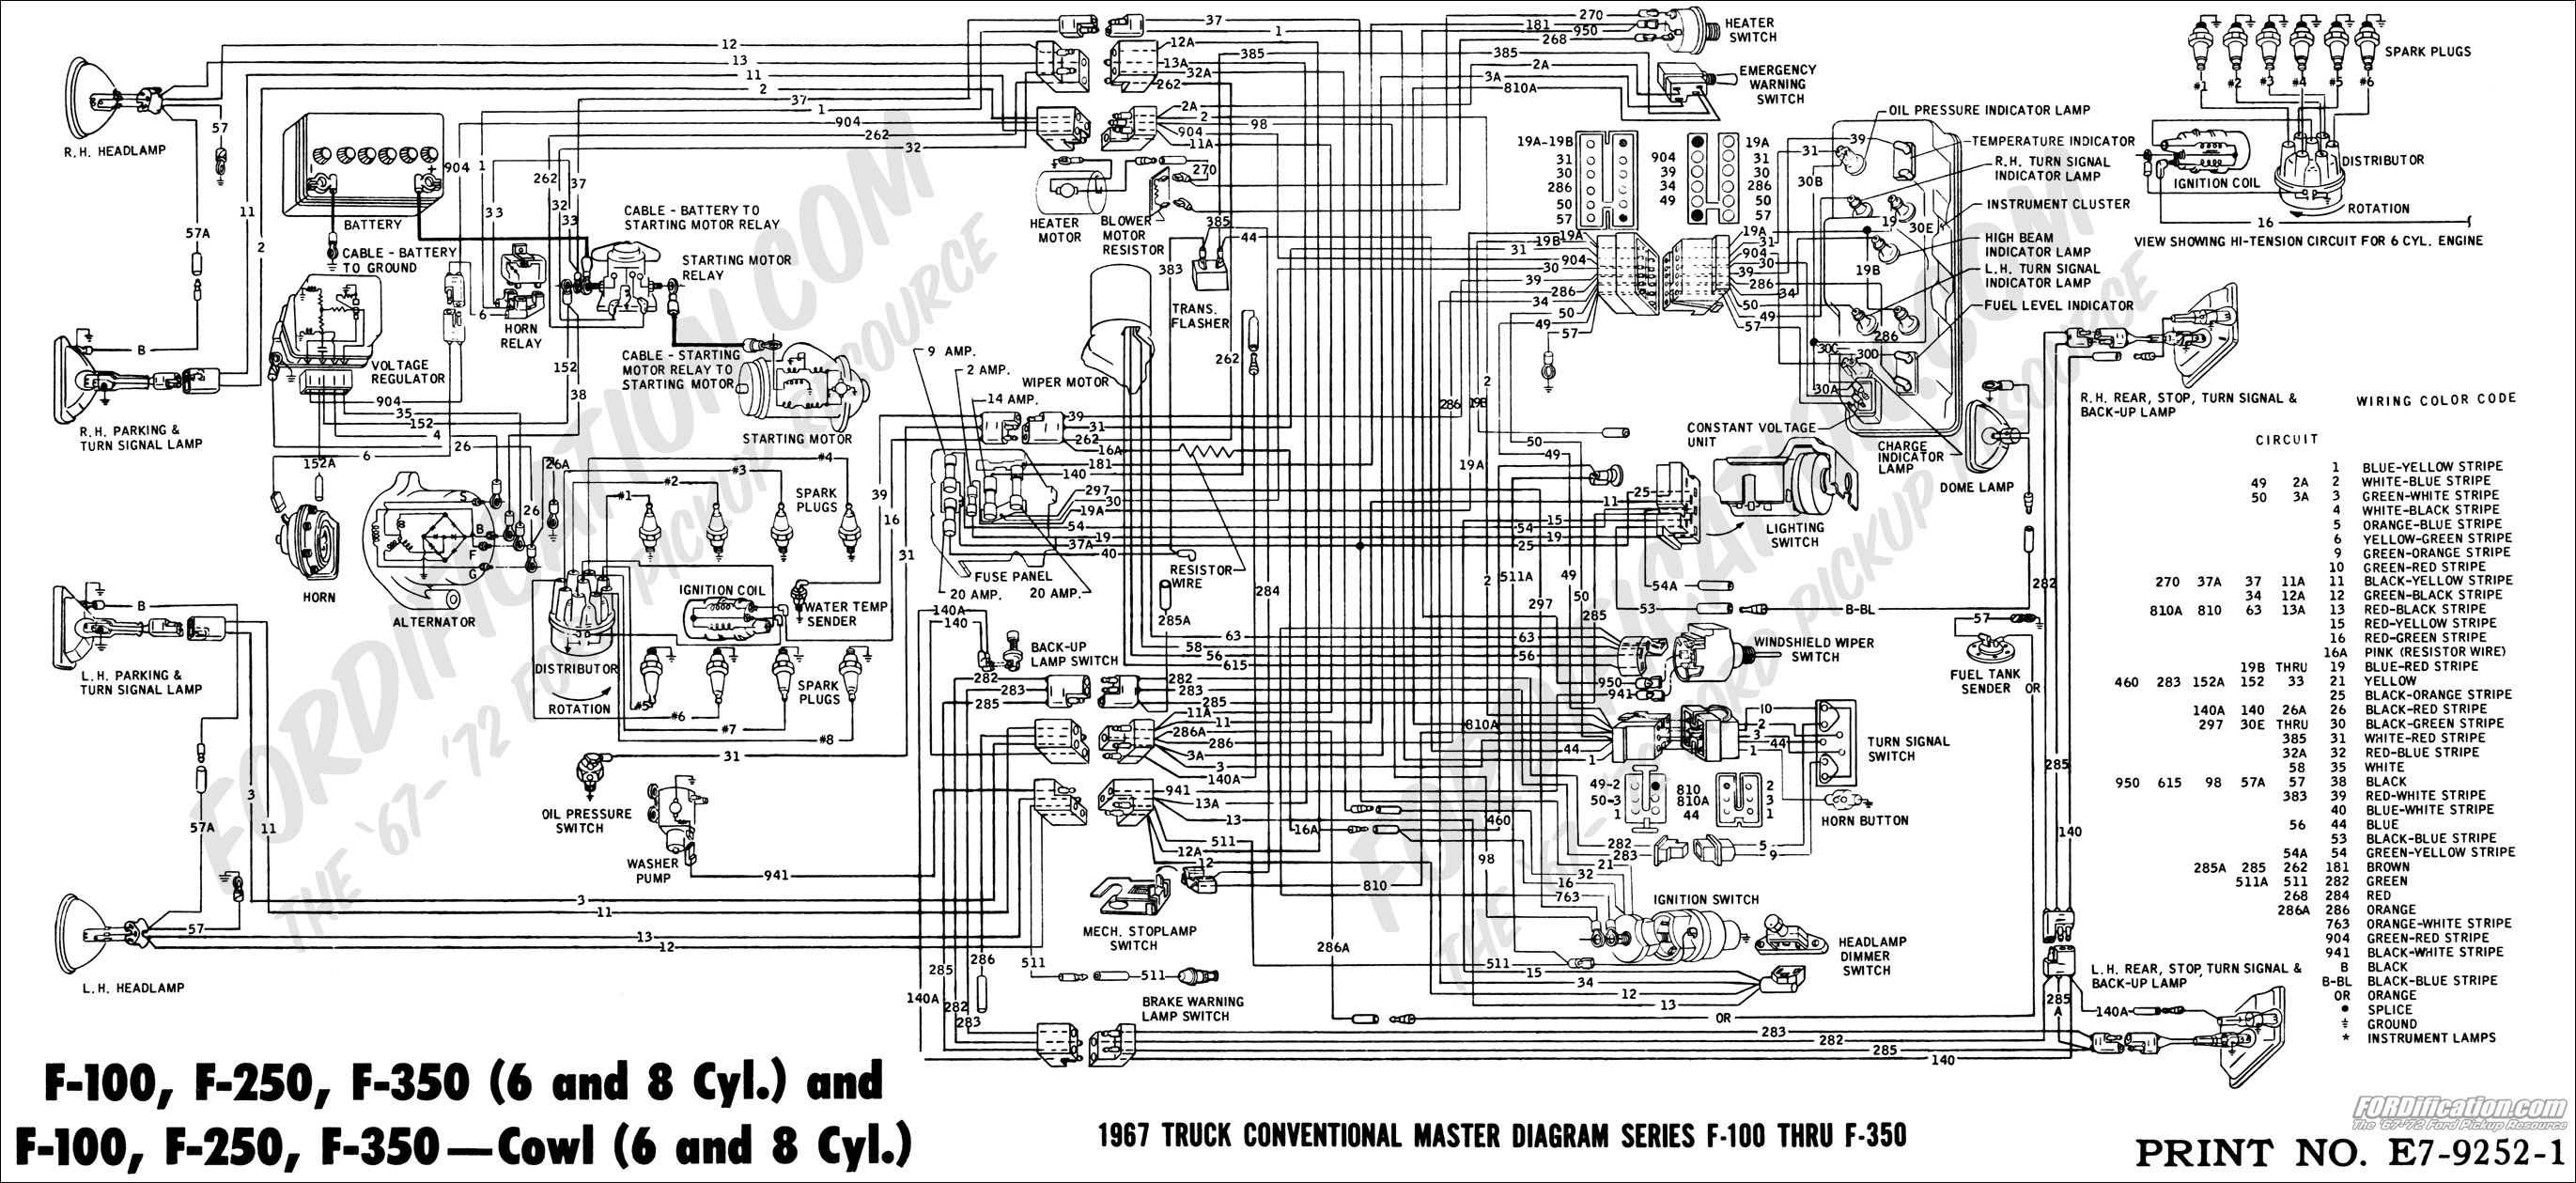 Ford Truck Wiring Harness Schematic Diagram 2007 Mitsubishi Fuso Diagrams 1979 F 100 Data Schematics U2022 1955 F100